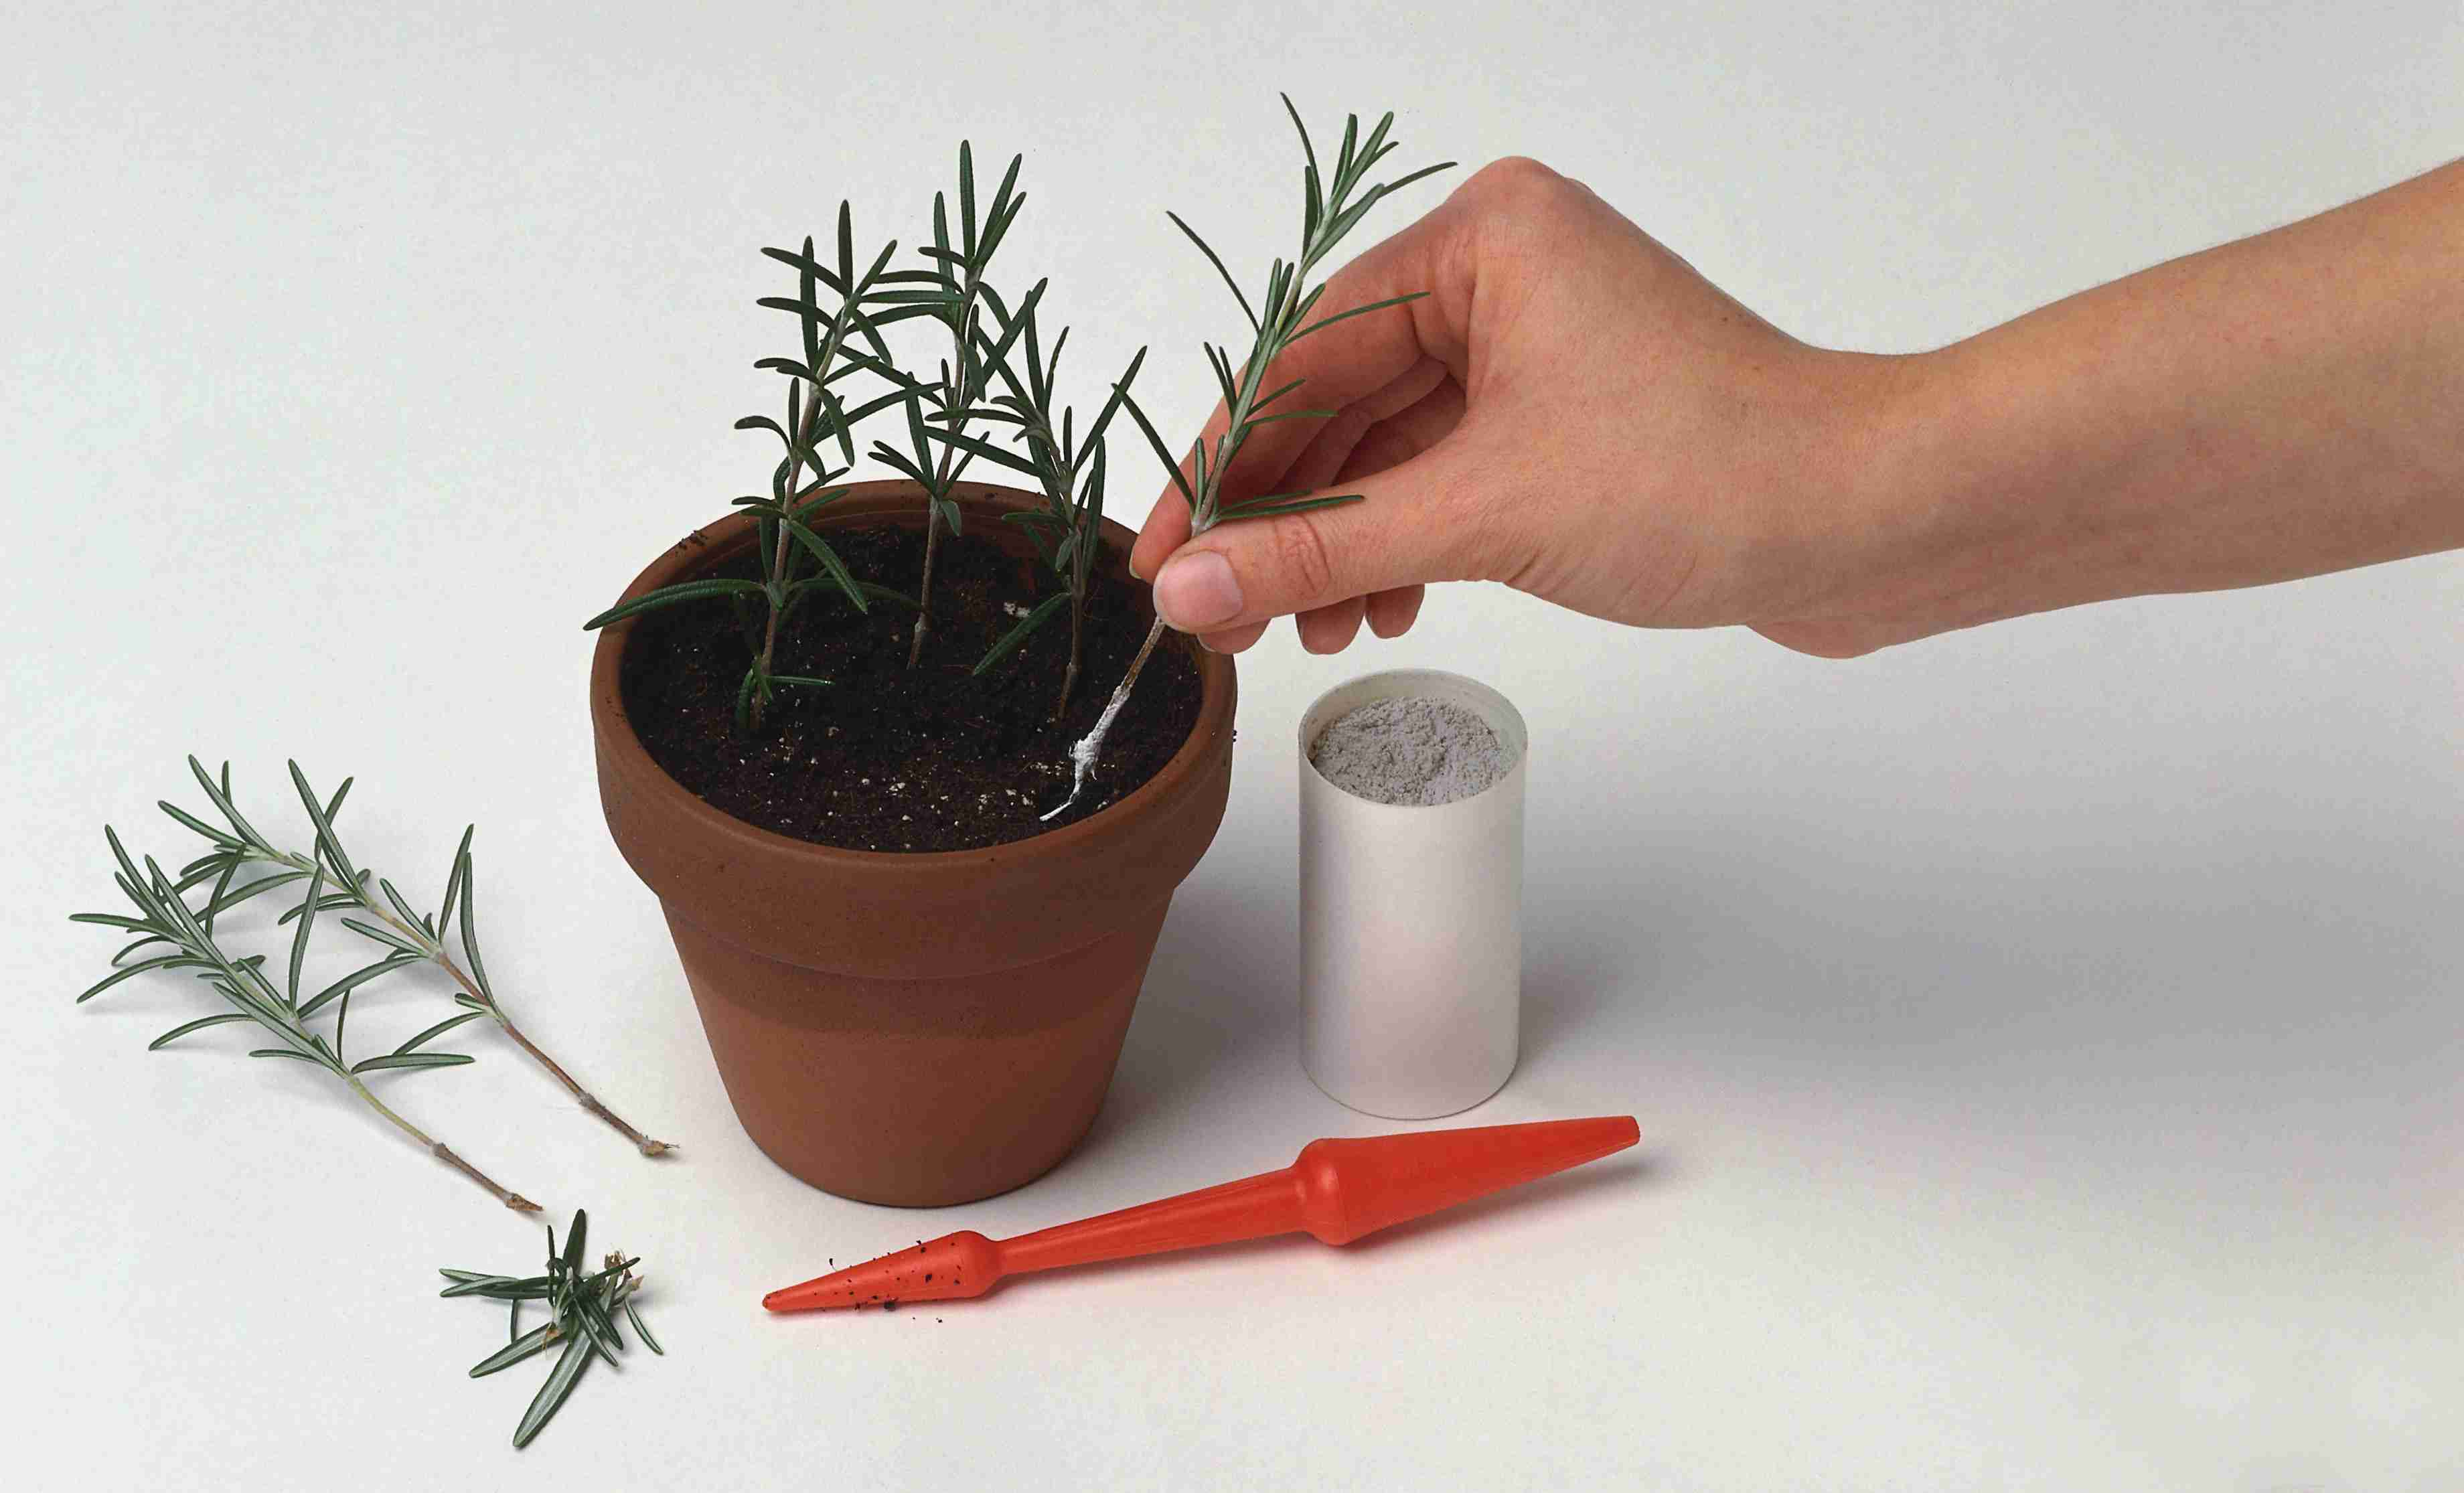 Hormone rooting powder tells plant tissue to grow roots.